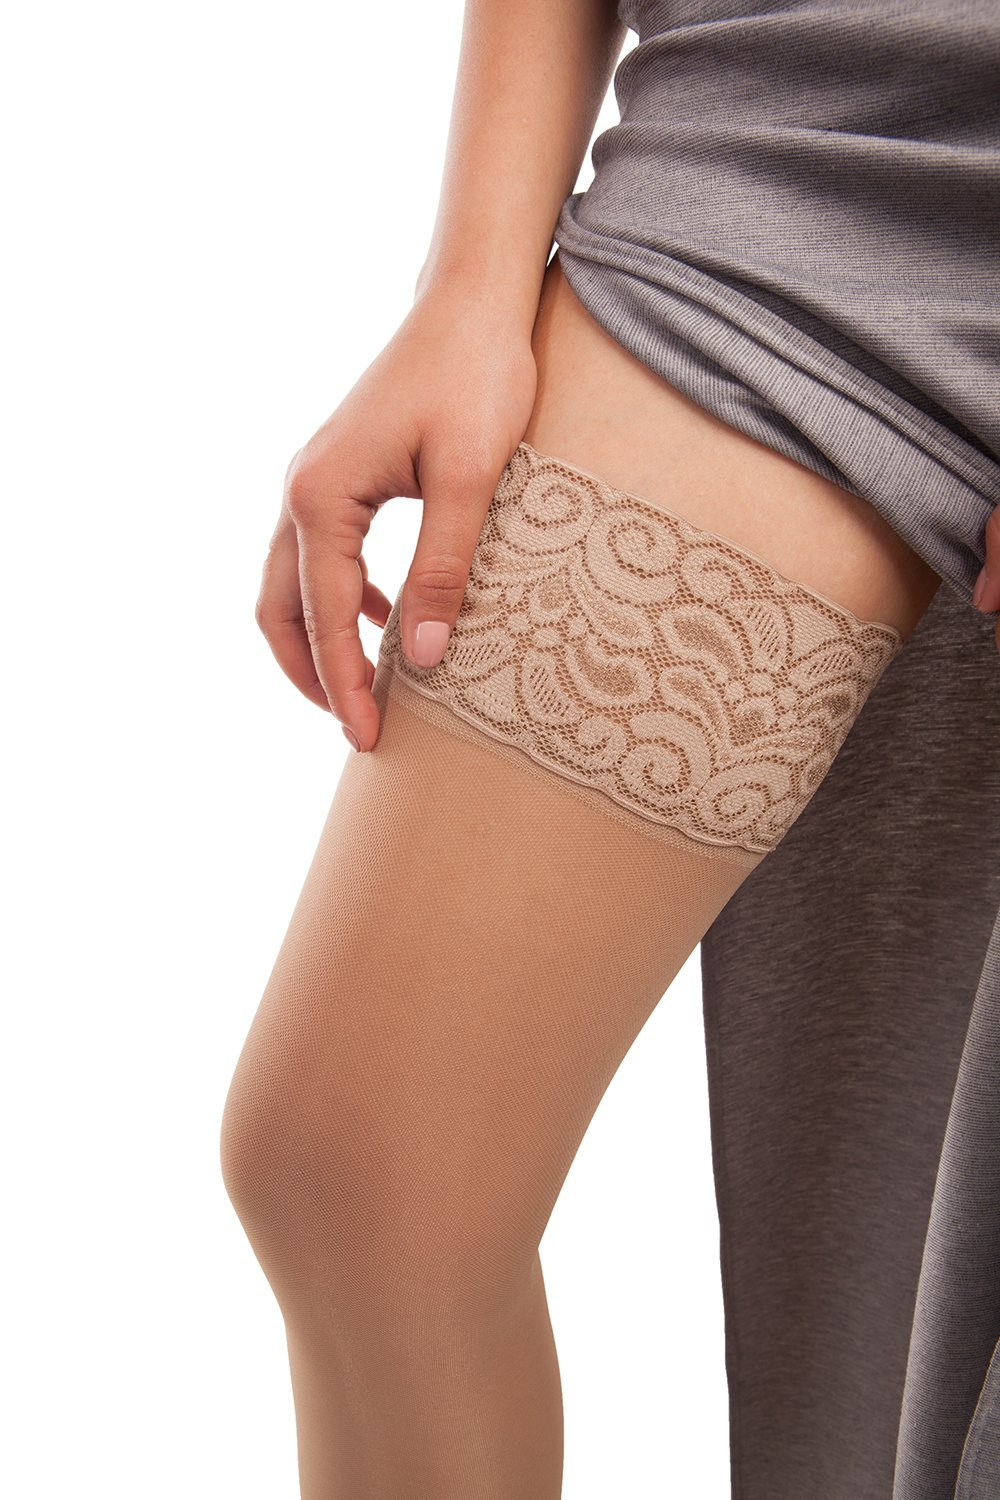 Sheer Thigh Highs - Firm Compression - Gabrialla